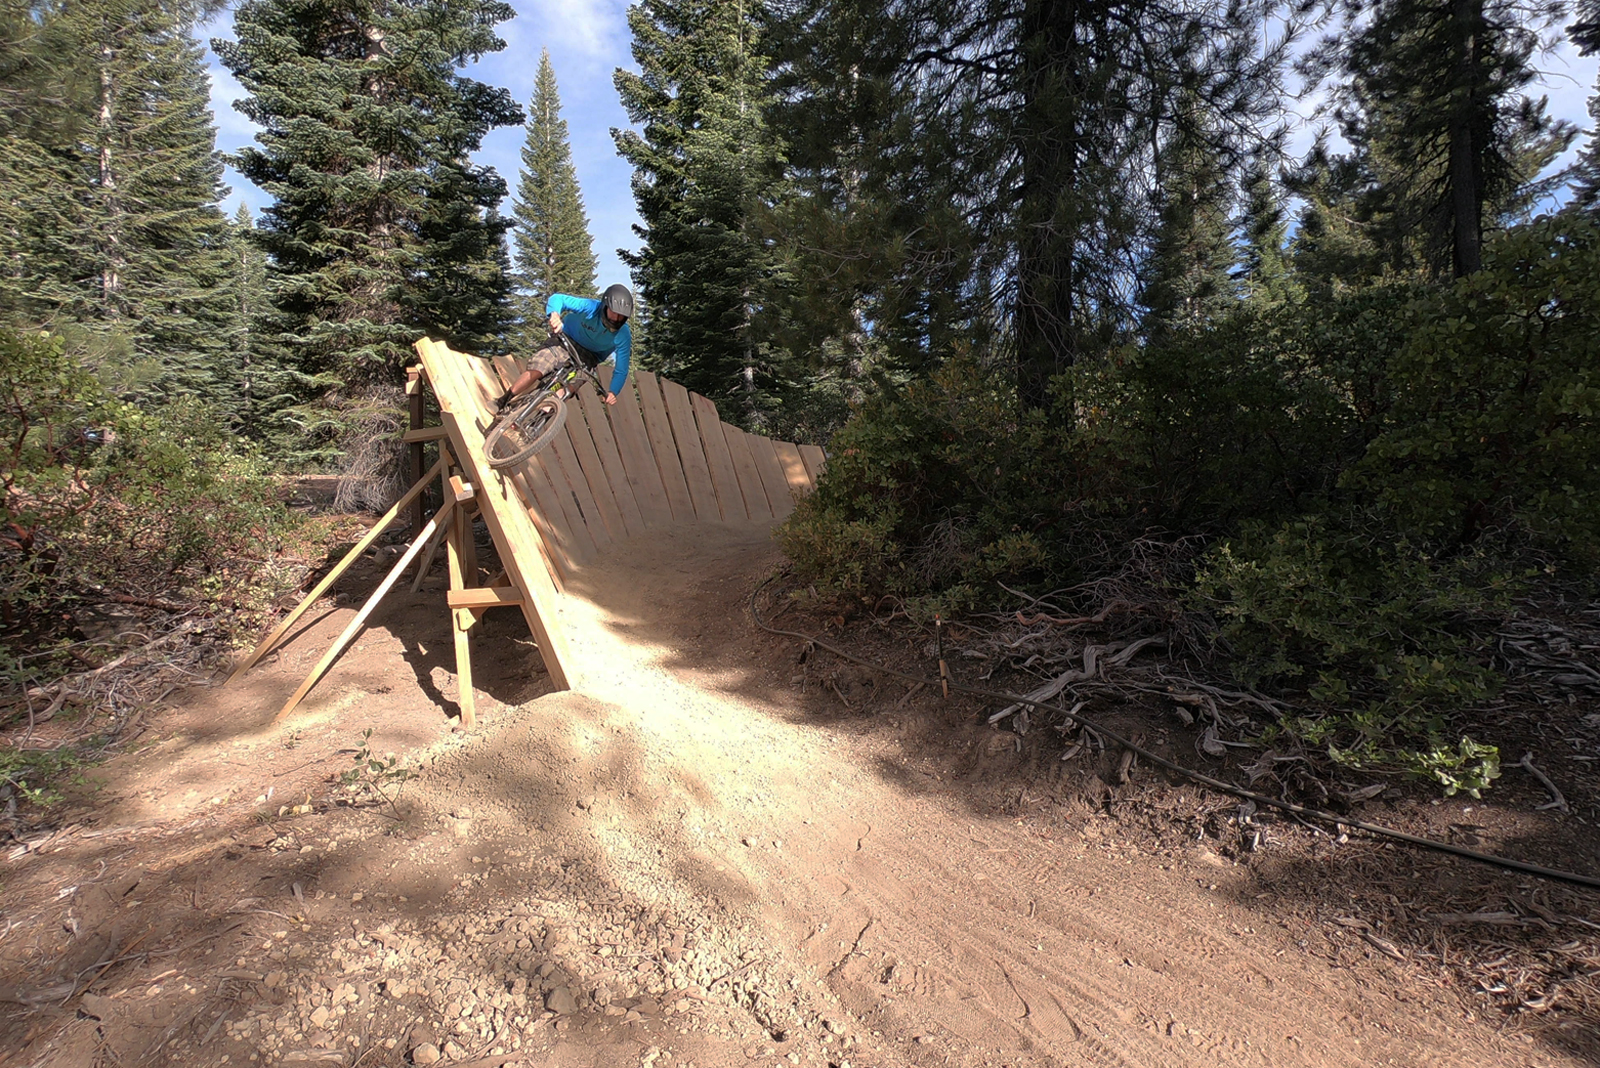 Mt. Shasta Bike Park Scheduled to Open June 15